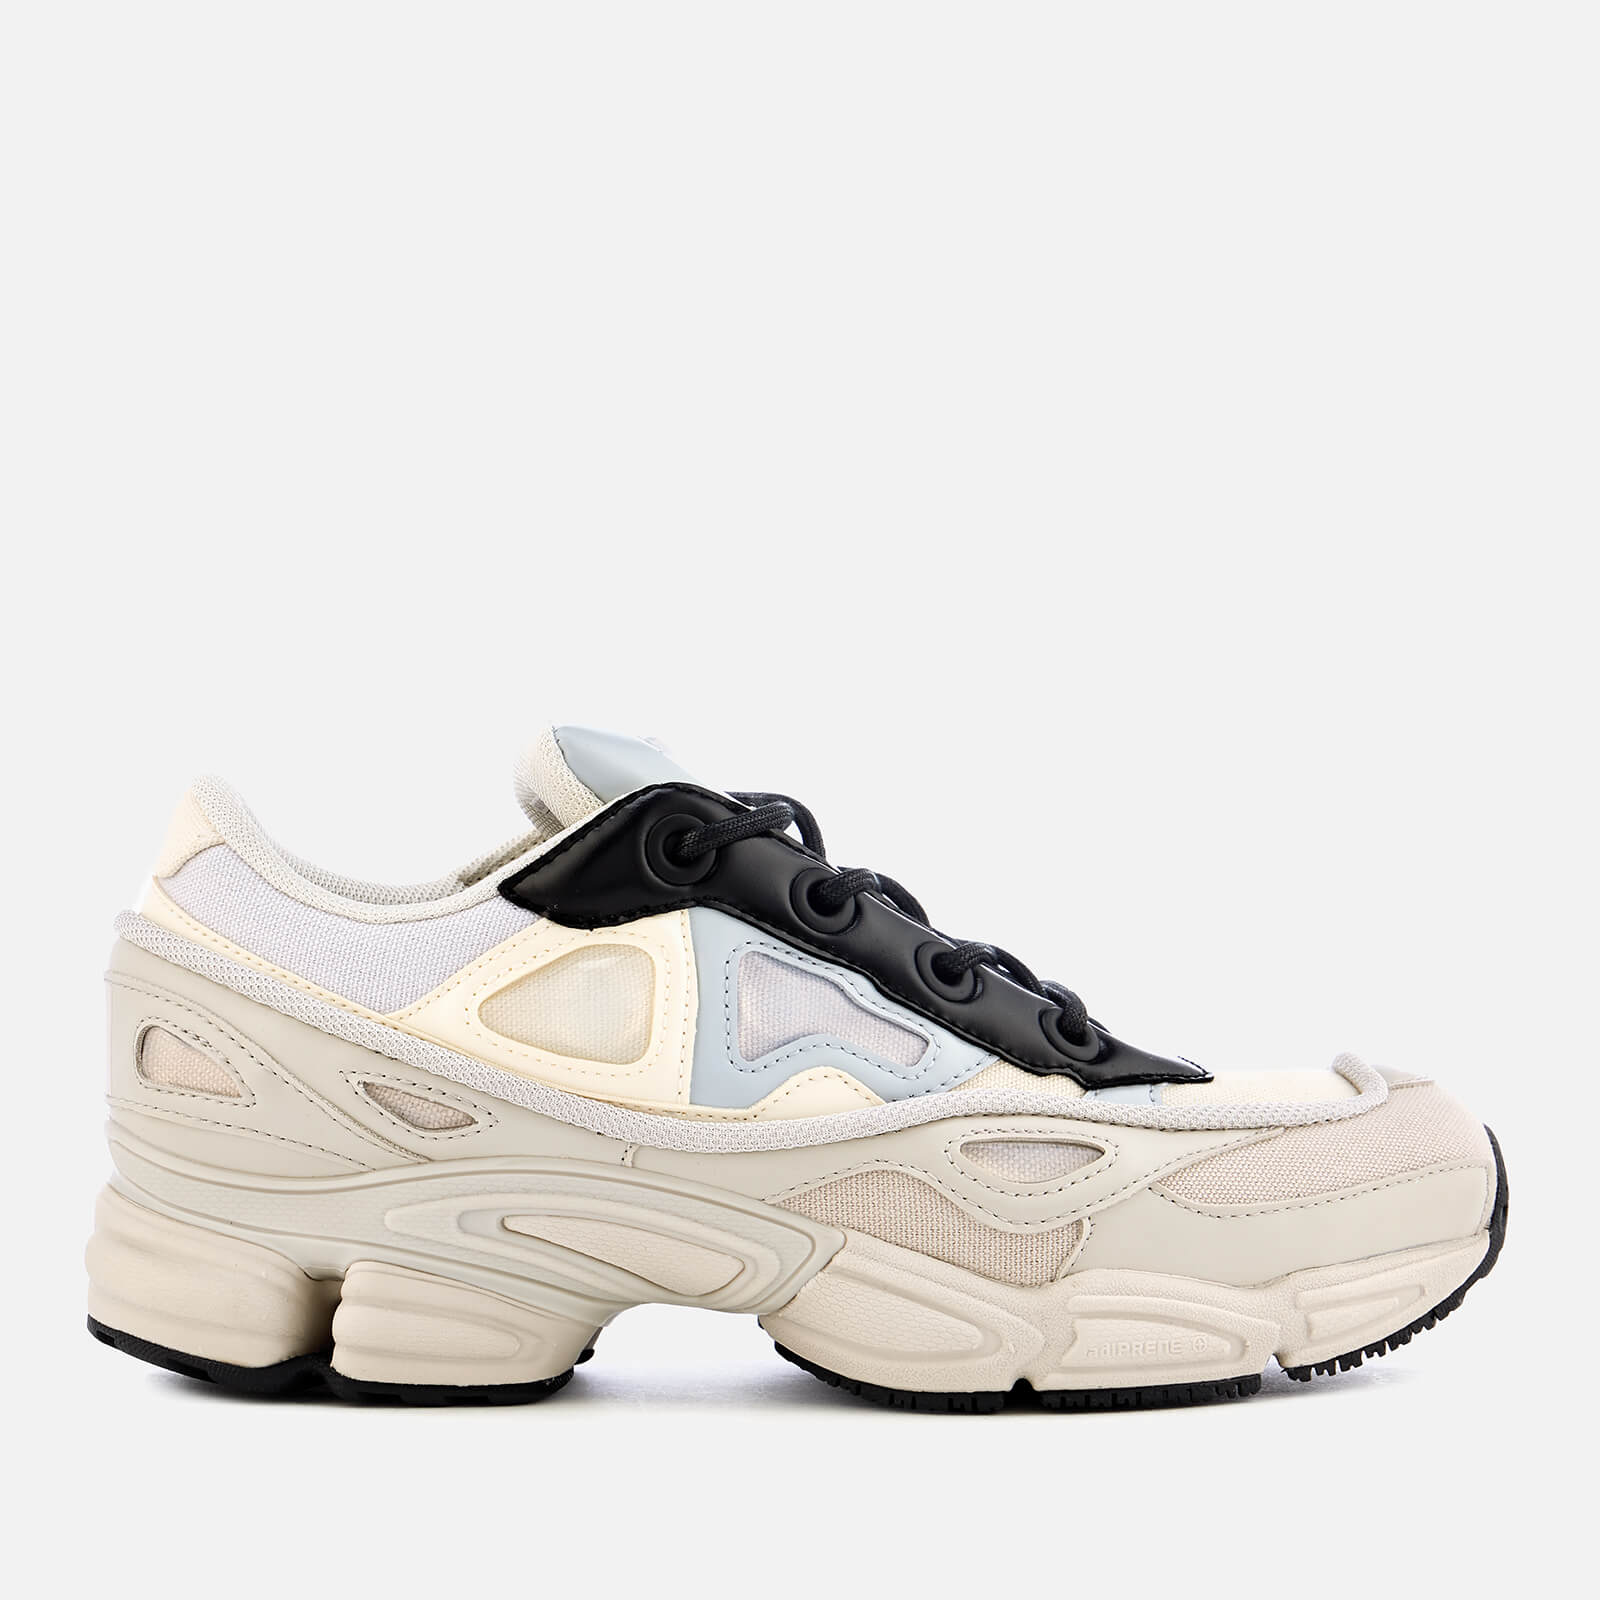 b5c01a8bf51c adidas by Raf Simons Men s Ozweego III Trainers - Cream White - Free UK  Delivery over £50